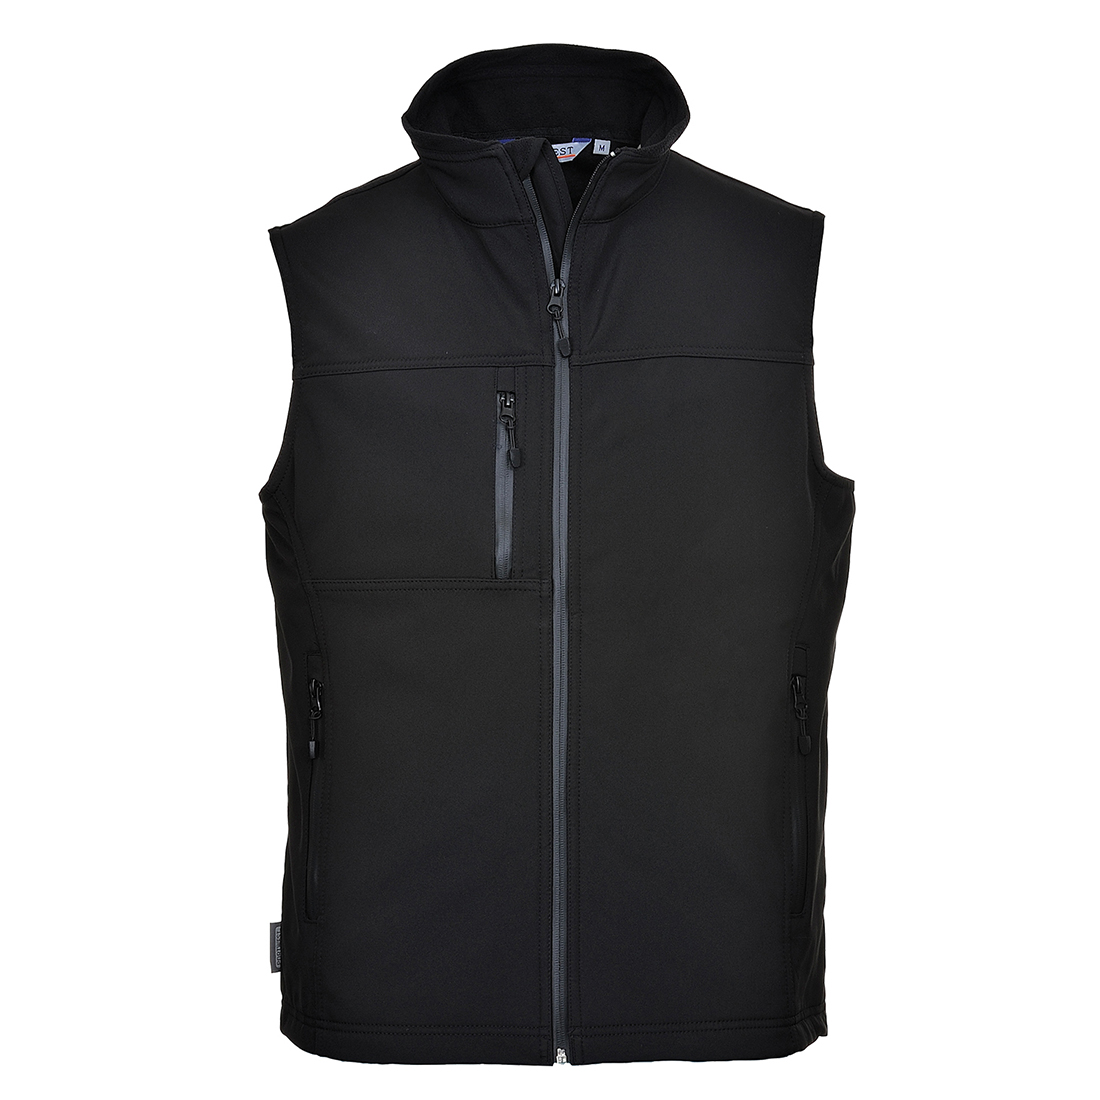 Portwest Softshell Bodywarmer - TK51